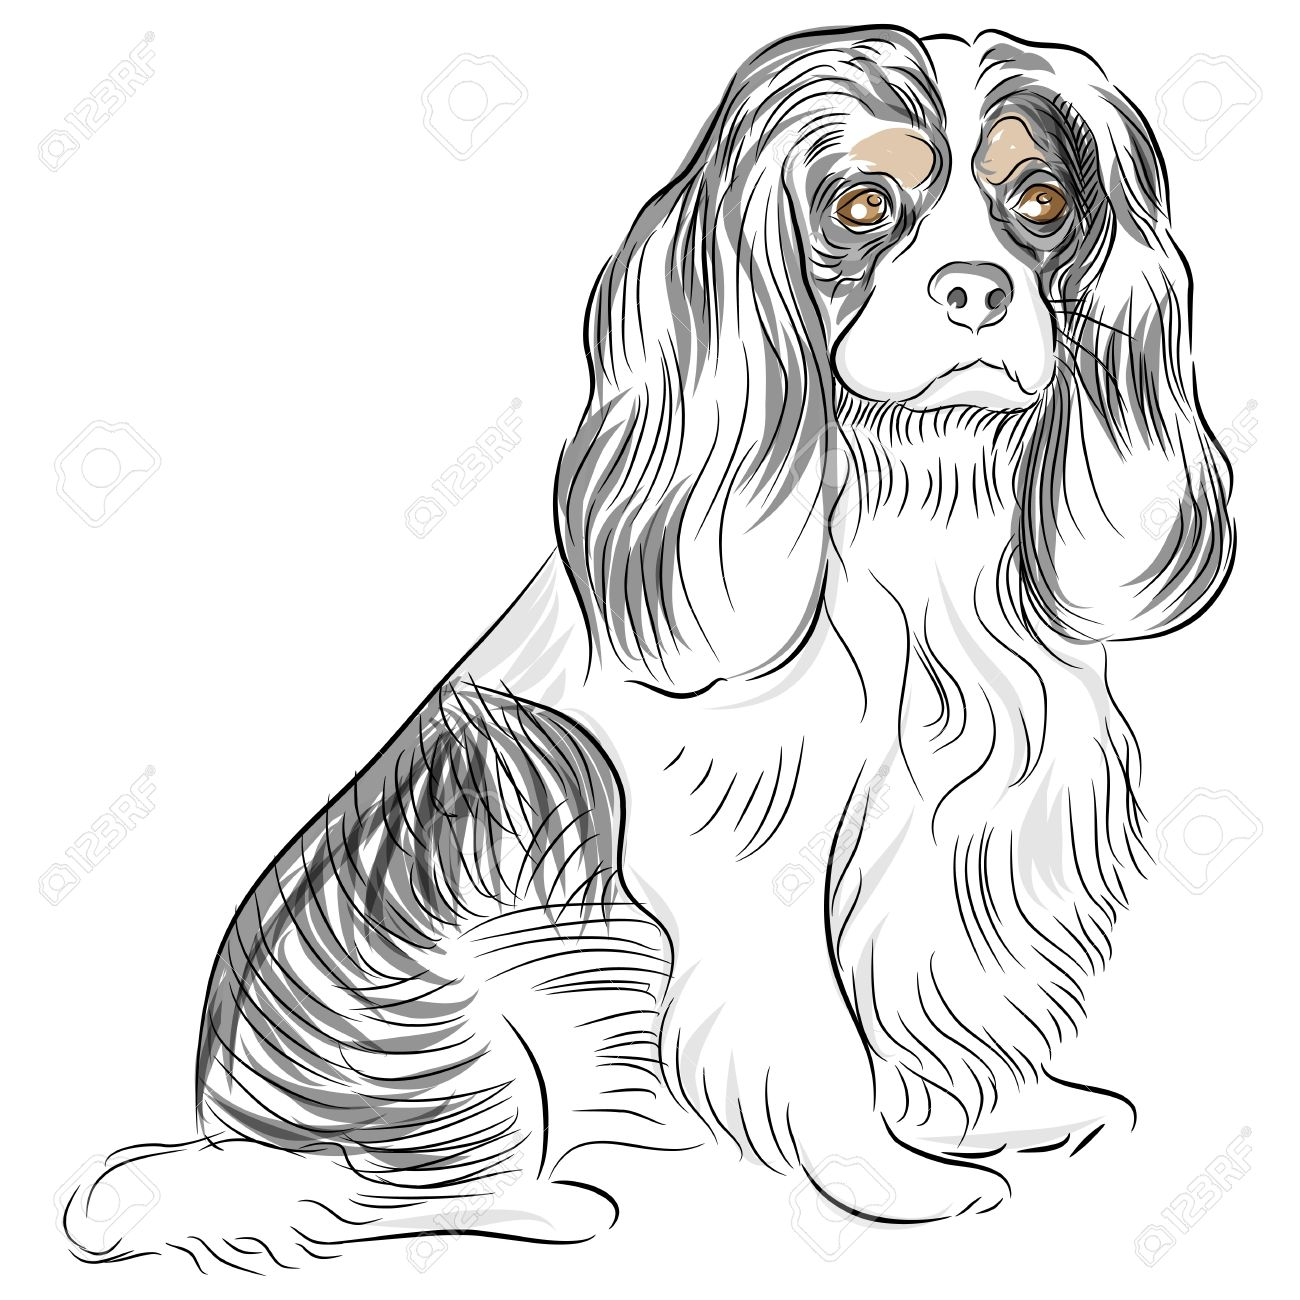 An image of a Cavalier King Charles Spaniel dog Drawing. Stock Vector - 9805337